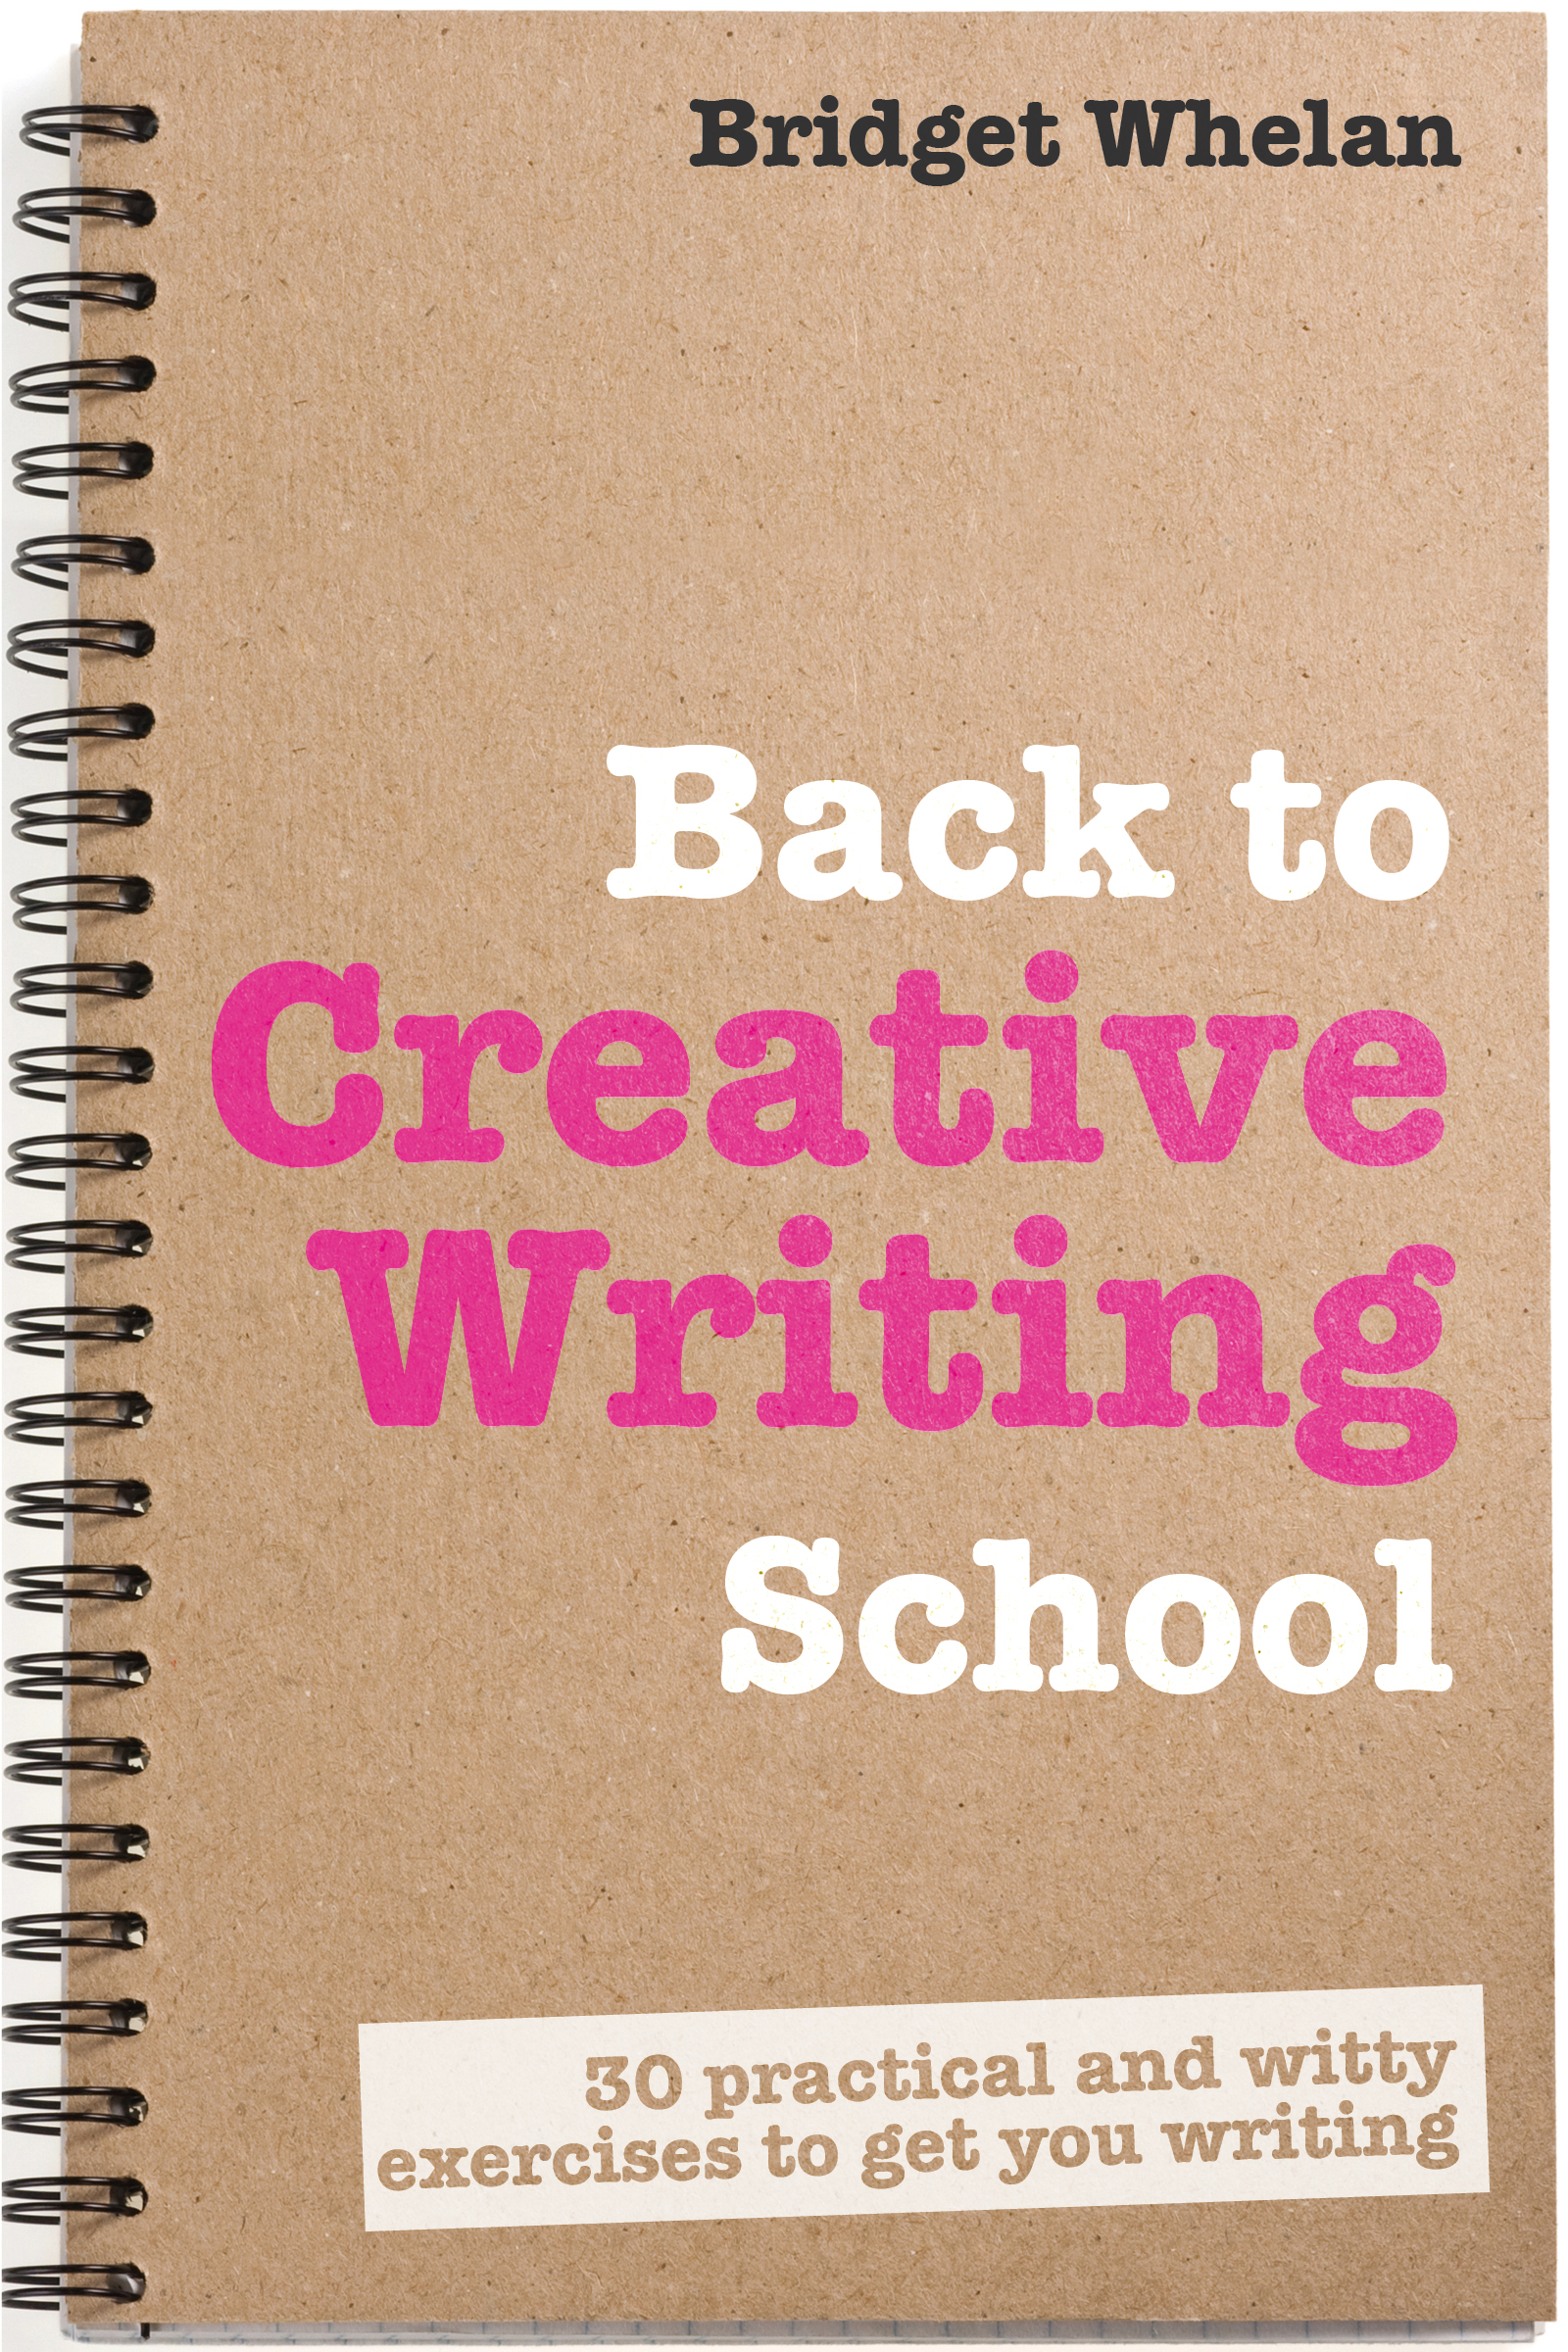 creative writing in schools Get the latest ranking of top 10 schools for aspiring writers 2016 here what will you do with a creative writing major prepare for the skeptics—a creative writing major is not for the faint of heartif you're serious about your craft, you'll need a creative writing program that will whip your writing into shape.